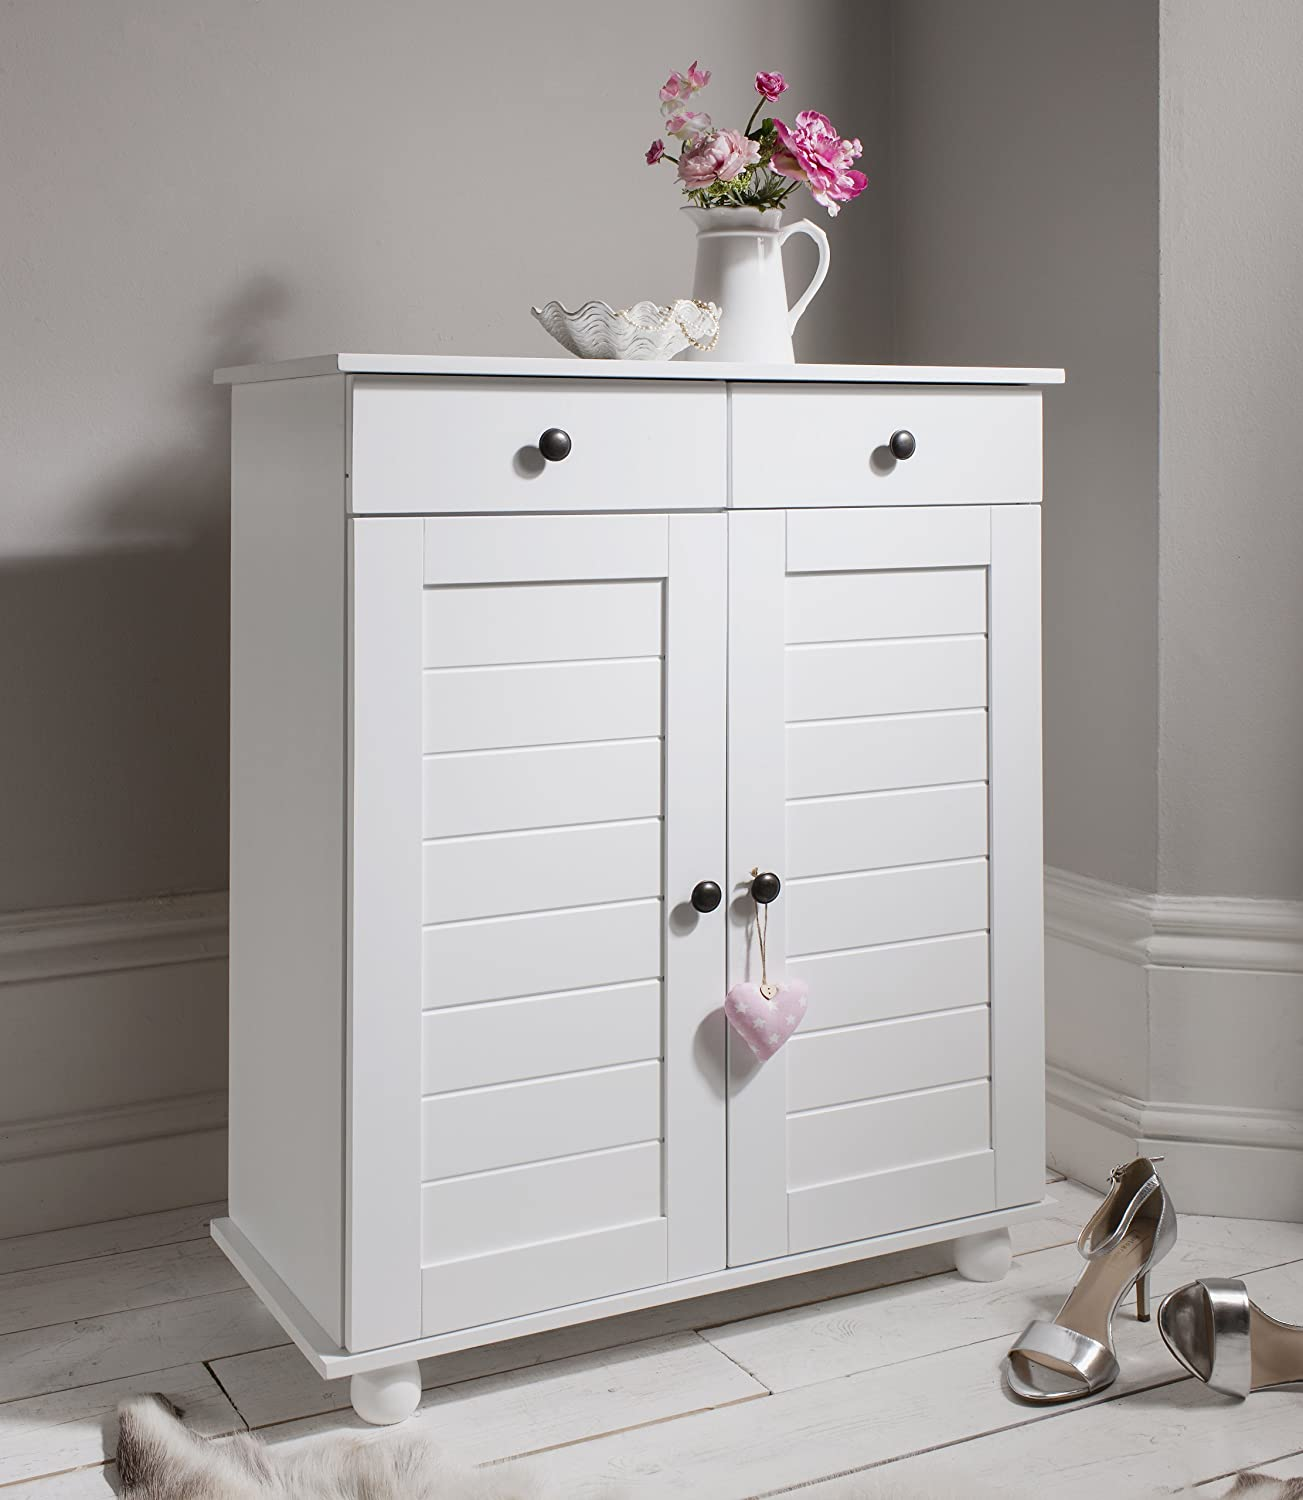 Exceptionnel Shoe Storage Cabinet Deluxe With Storage Drawer Heathfield In